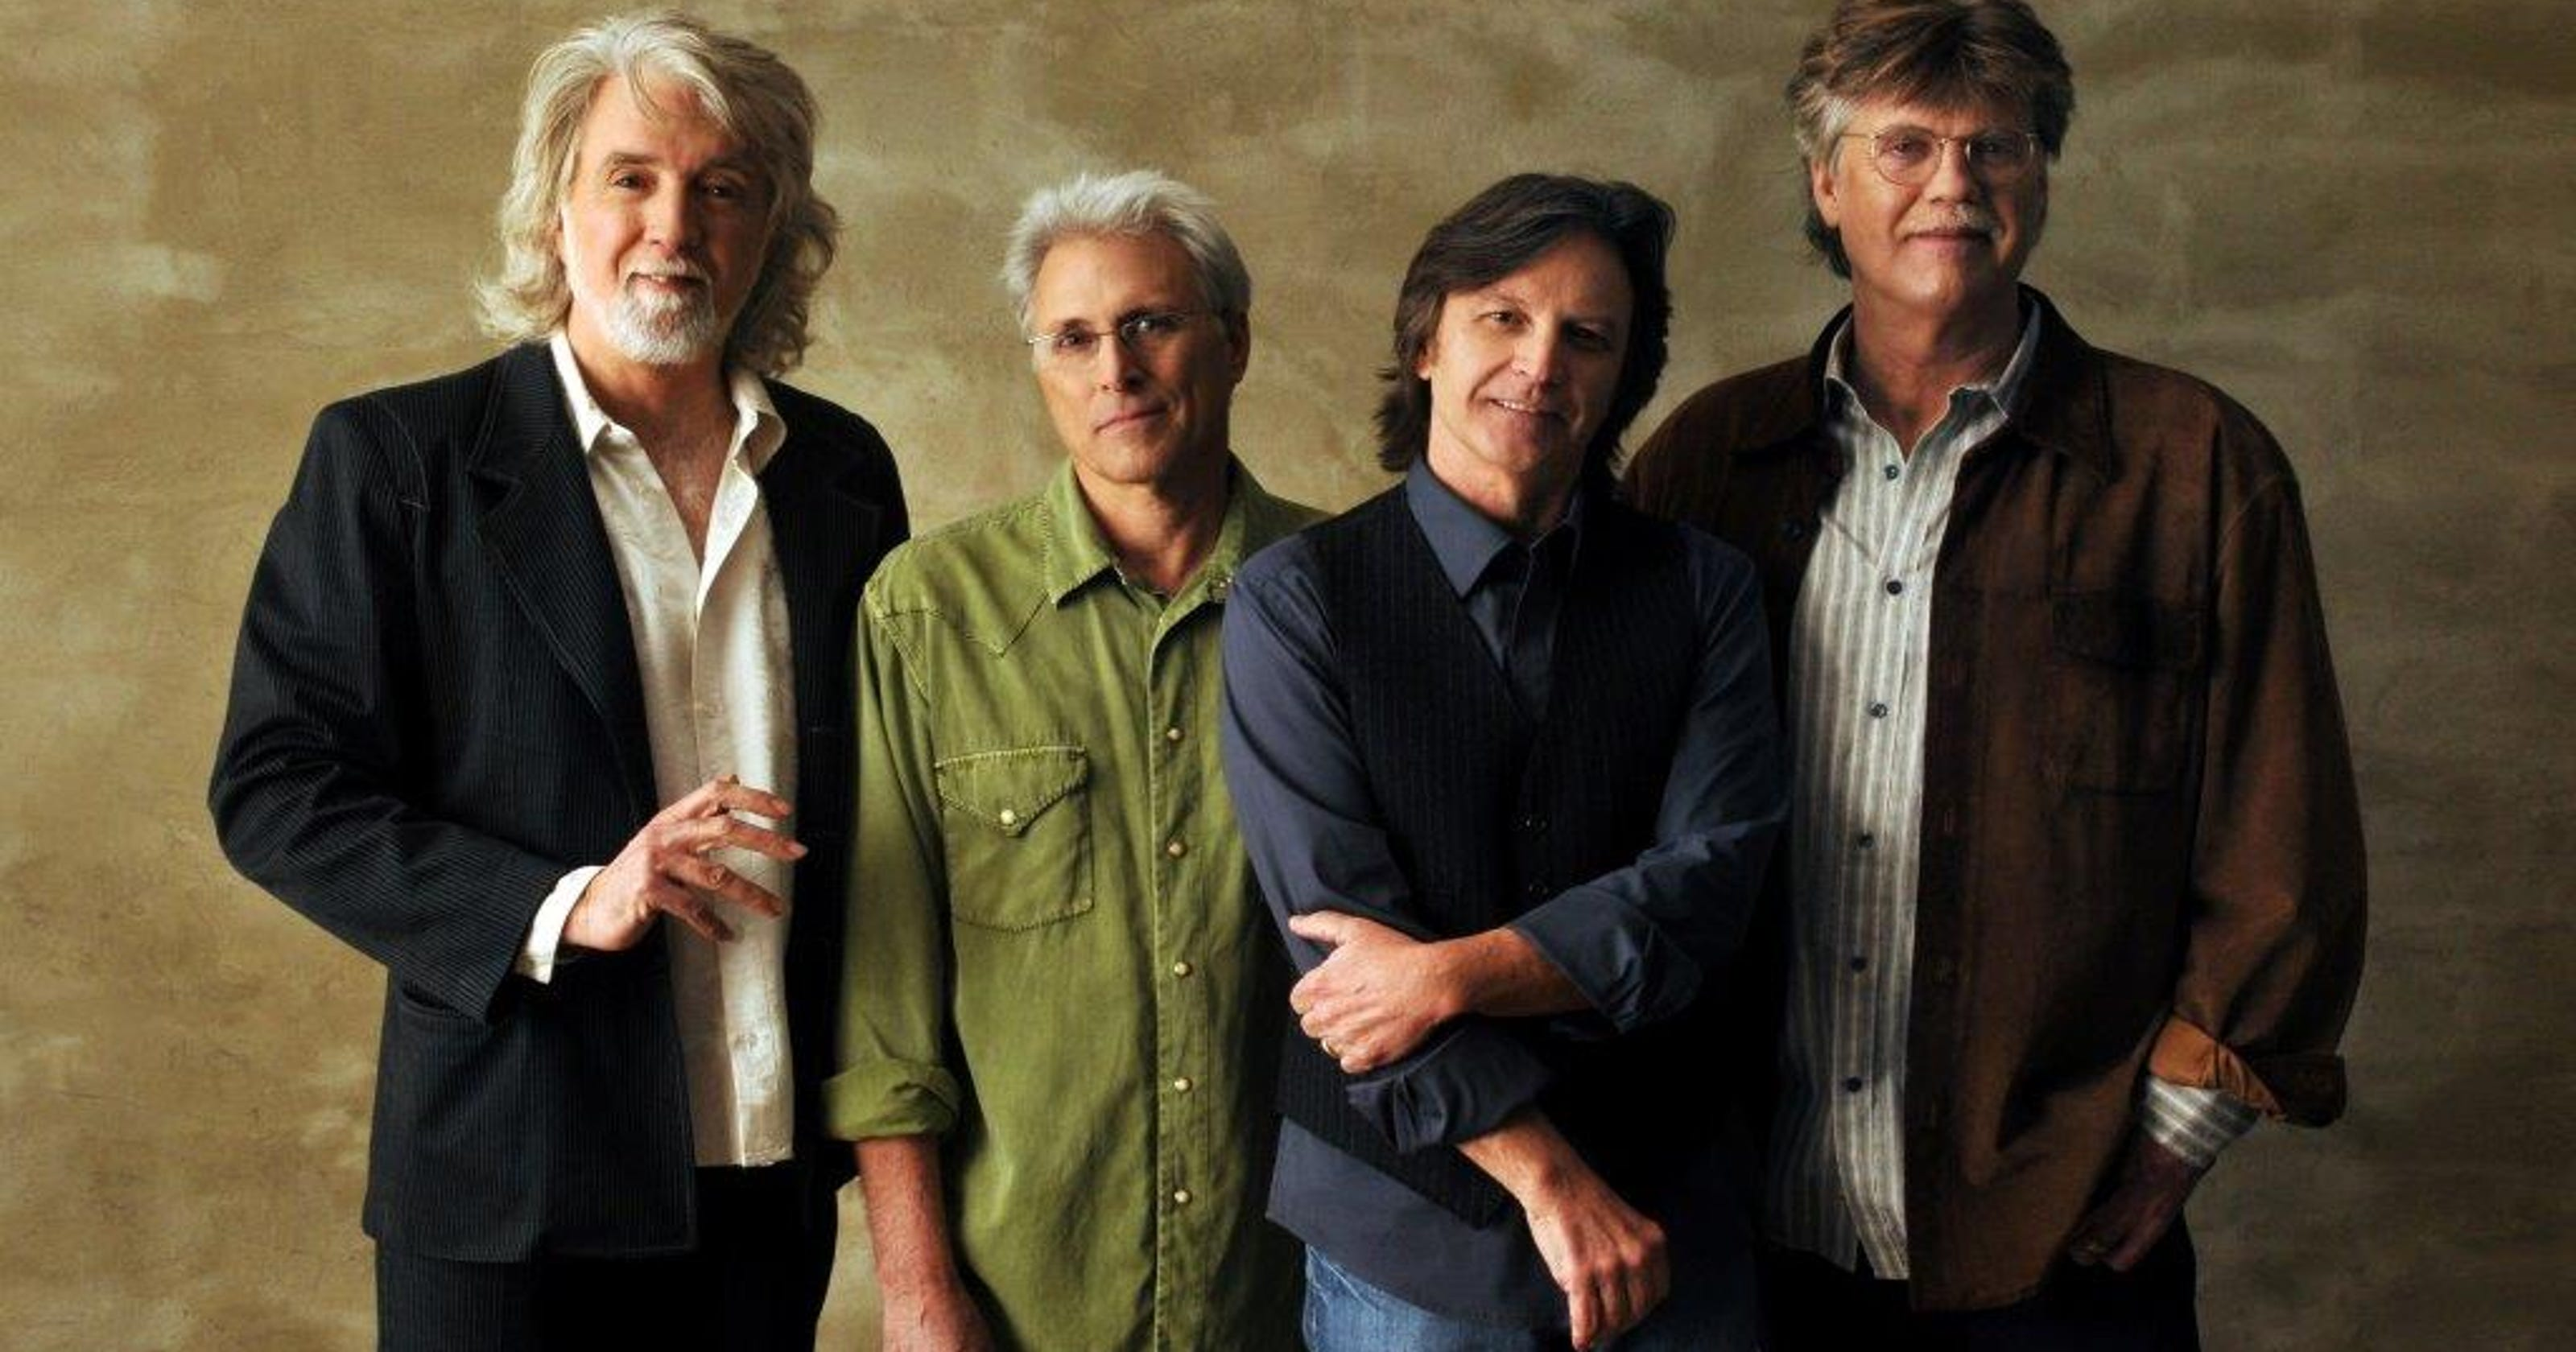 Florida Folk Festival gets down to the Nitty Gritty Dirt Band